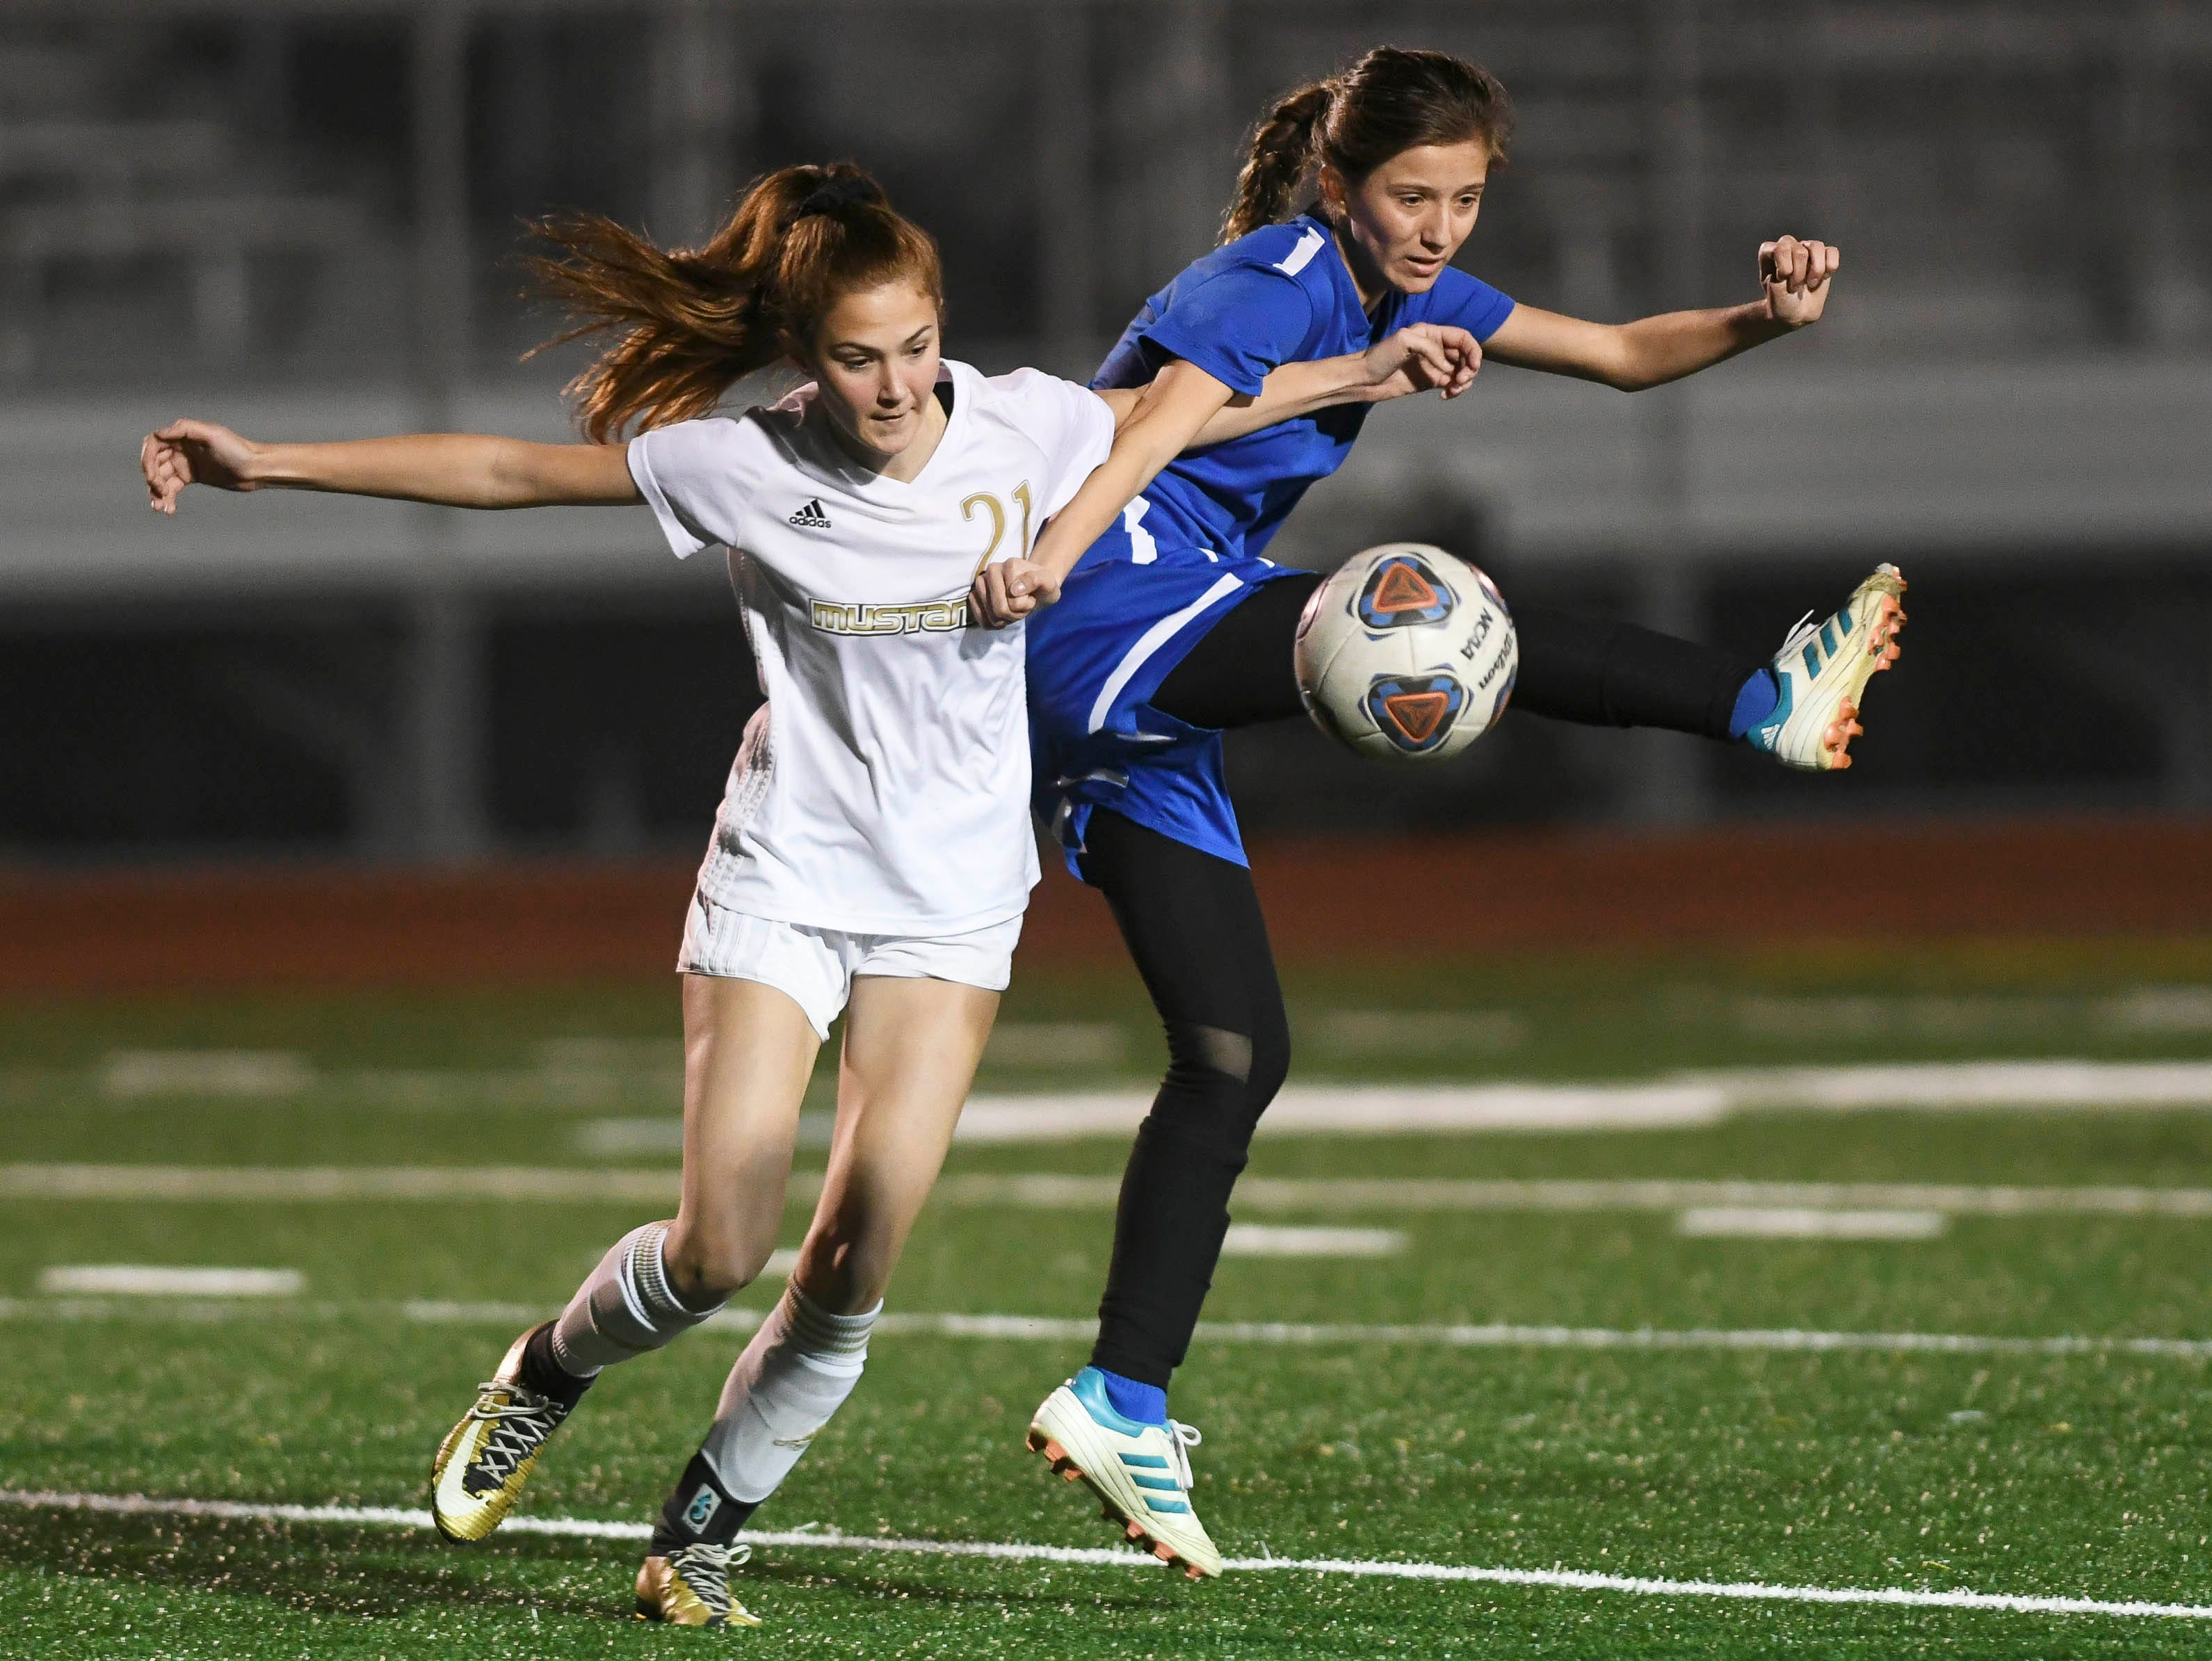 Ashleigh Sweat of Merritt Island and Adrianne Gutman of Titusville fight for the ball during Tuesday's district soccer semifinal.